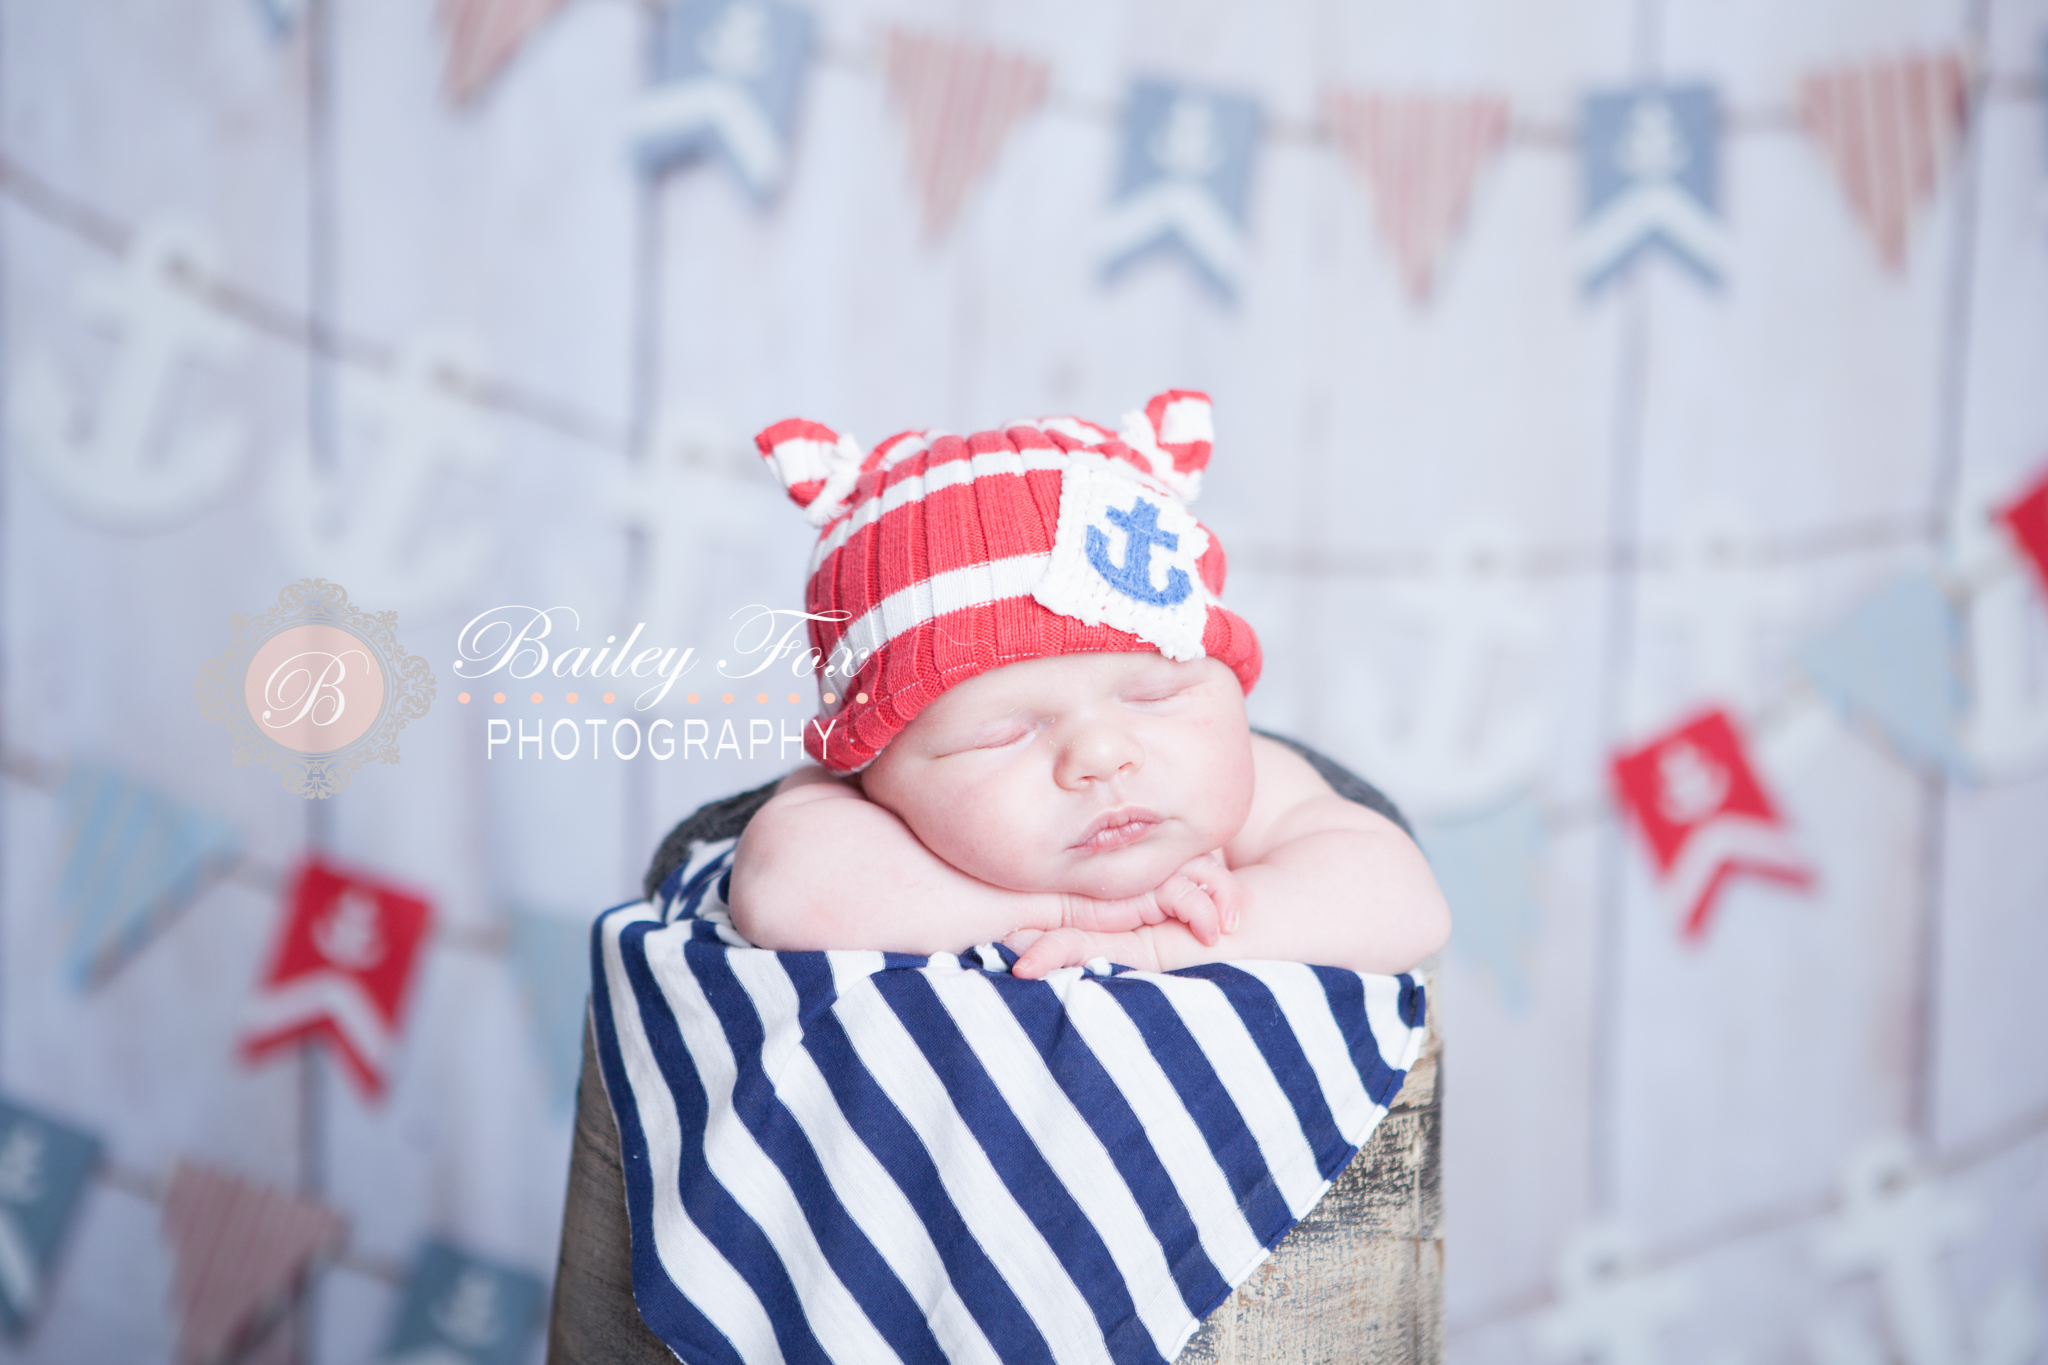 Bailey-Fox-Photography-RI-baby-photographer-3707